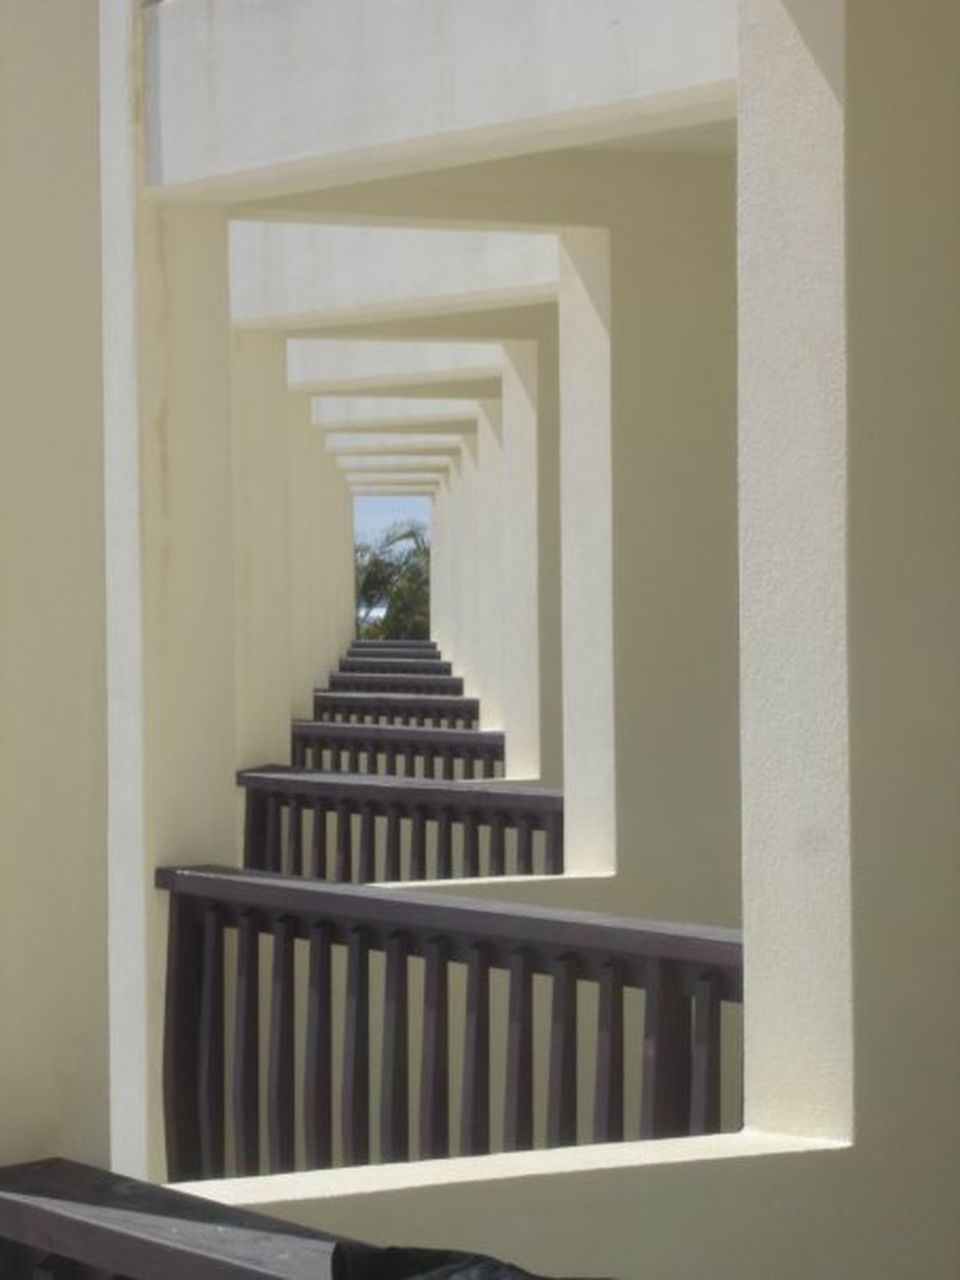 steps and staircases, steps, staircase, architecture, railing, built structure, architectural column, day, no people, indoors